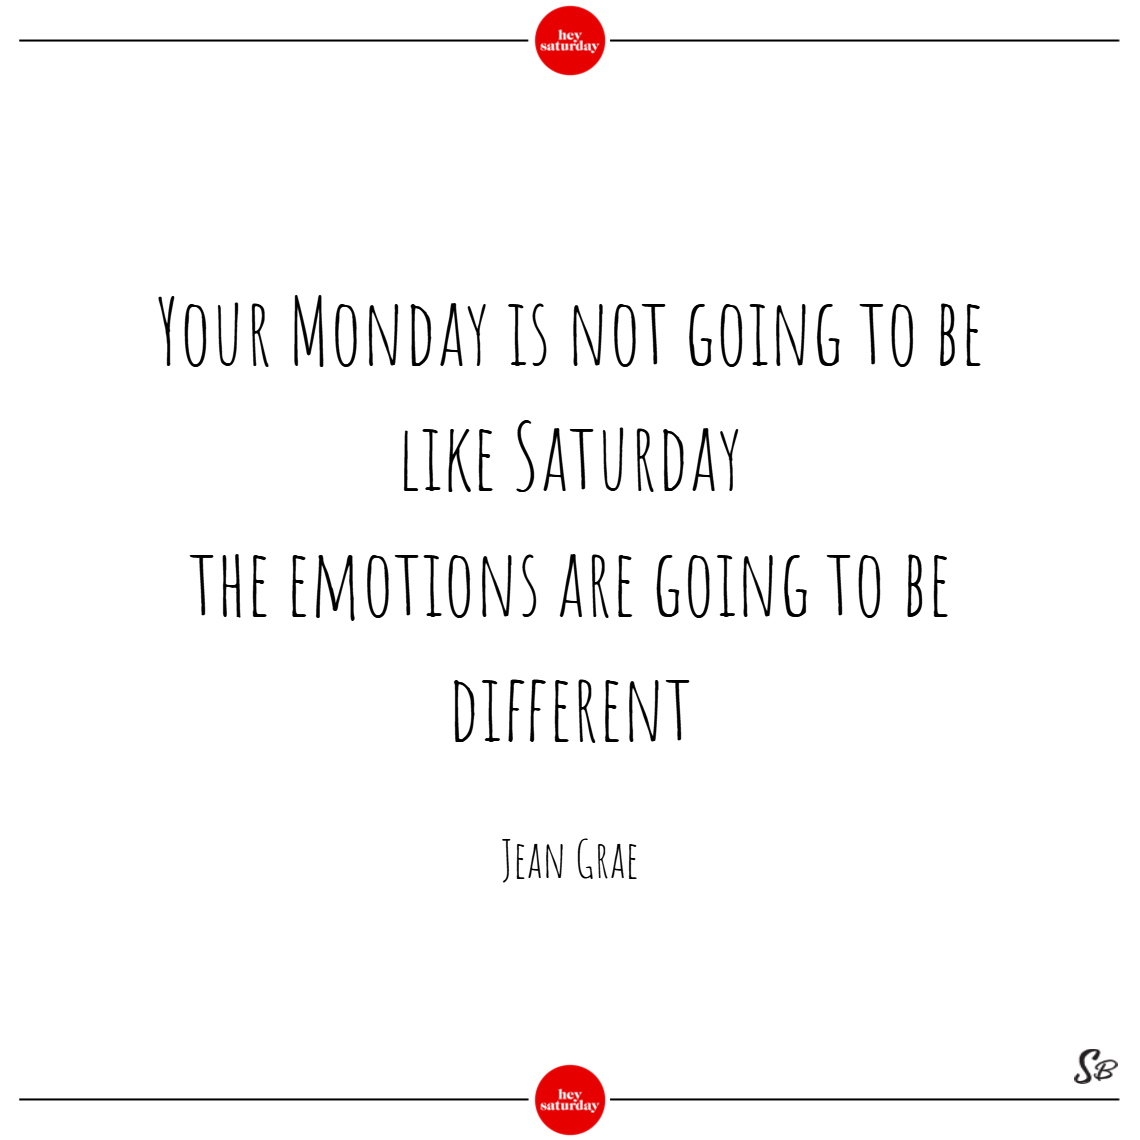 Your monday is not going to be like saturday; the emotions are going to be different. – jean grae